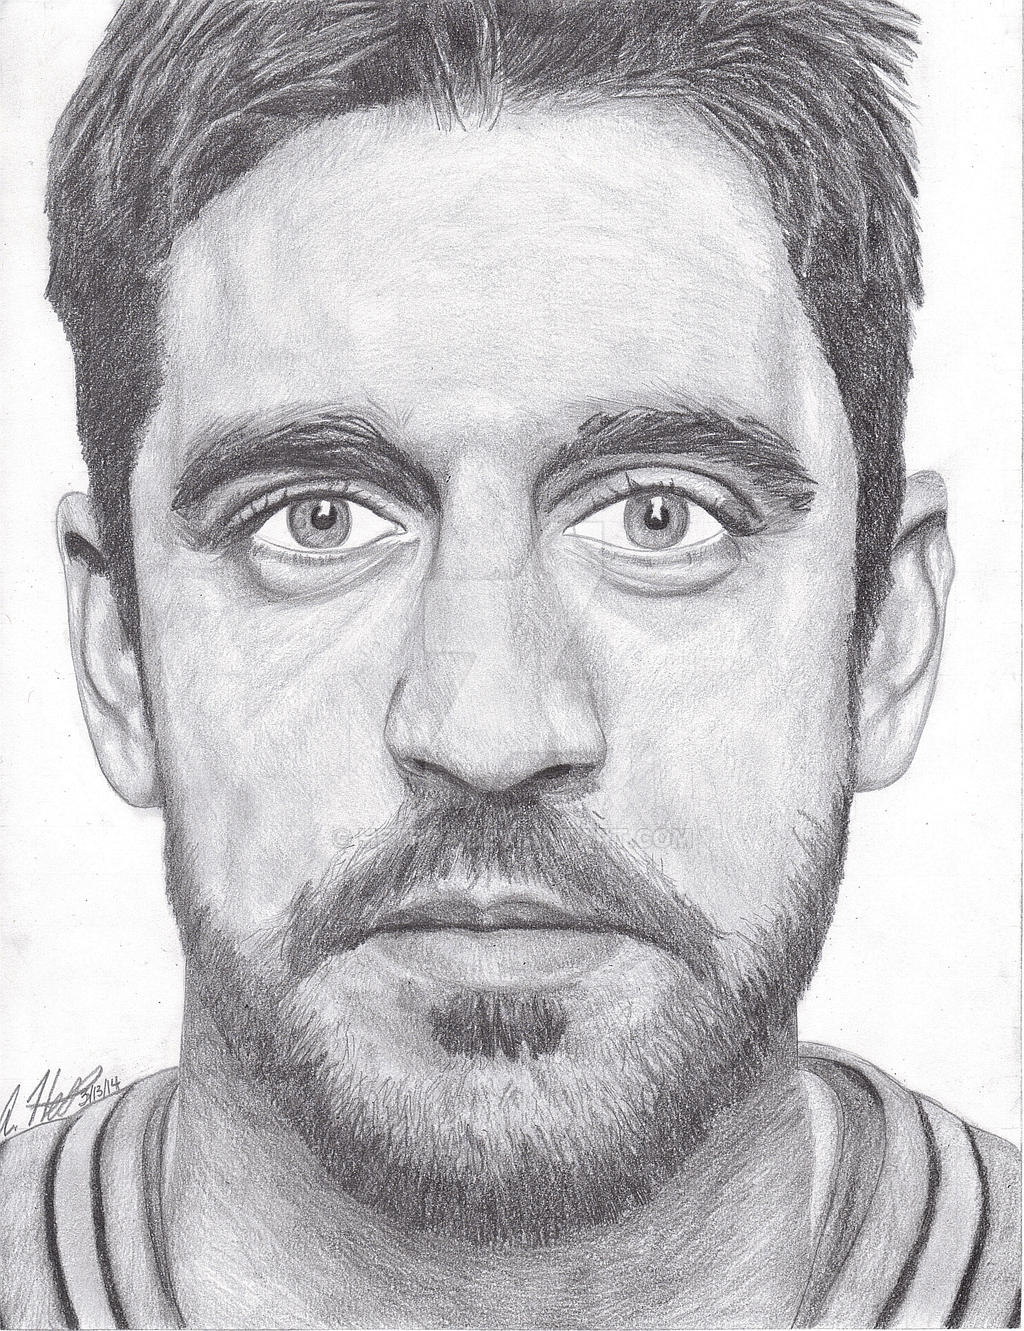 aaron_rodgers_drawing_by_hetro4-d7a6ns5.